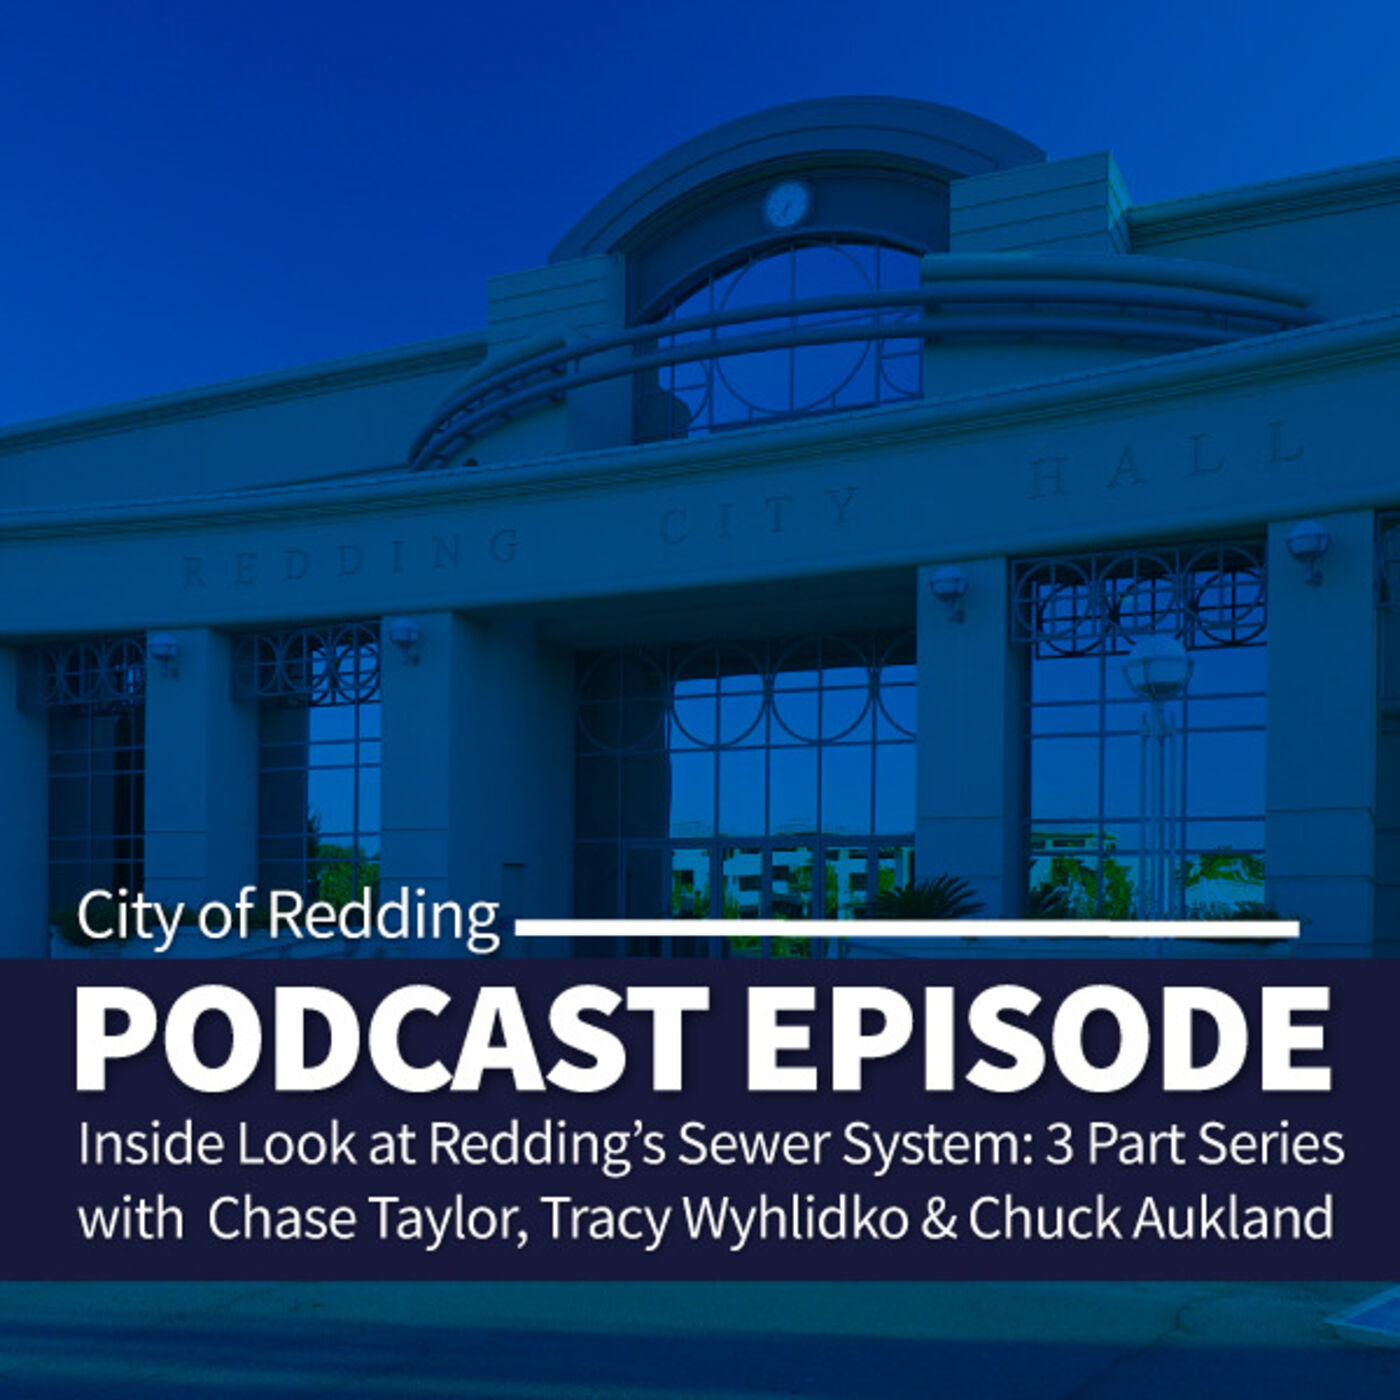 Inside Look at Redding's Sewer System, Part 1: Wastewater Collections Lead Chace Taylor